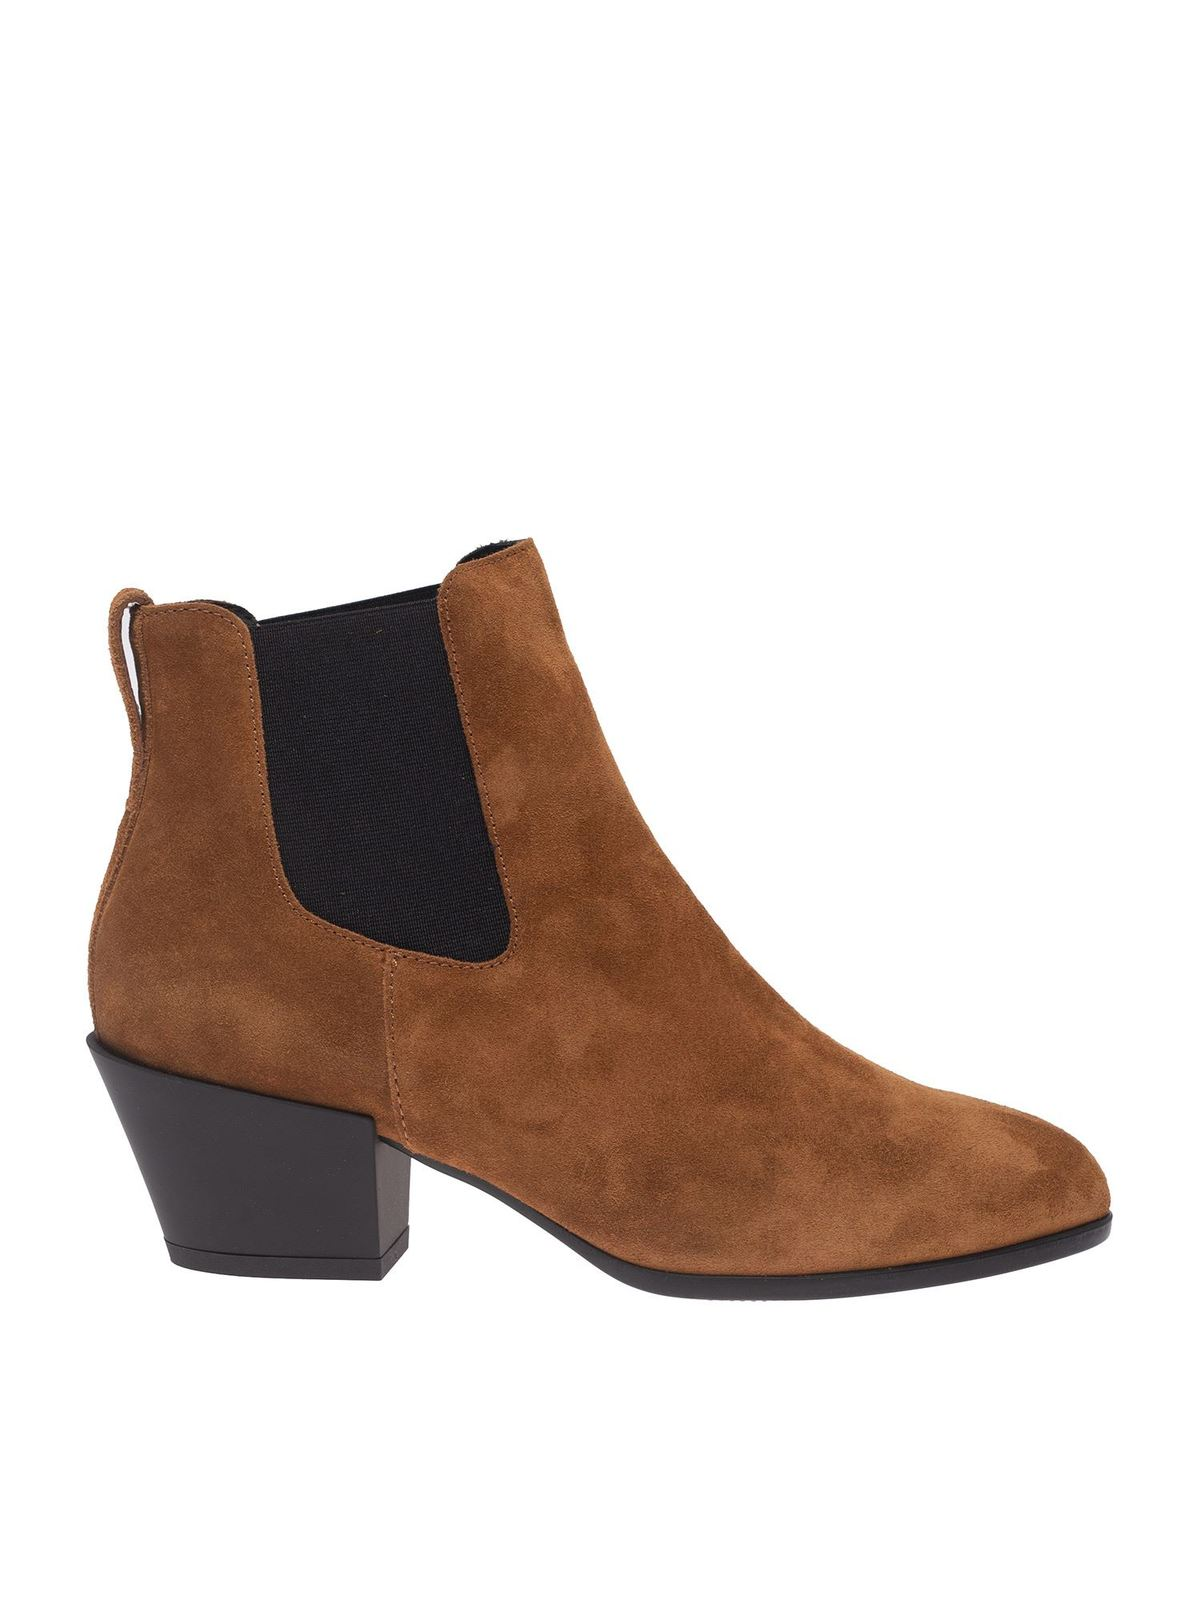 HOGAN TEXAN ANKLE BOOTS IN BROWN